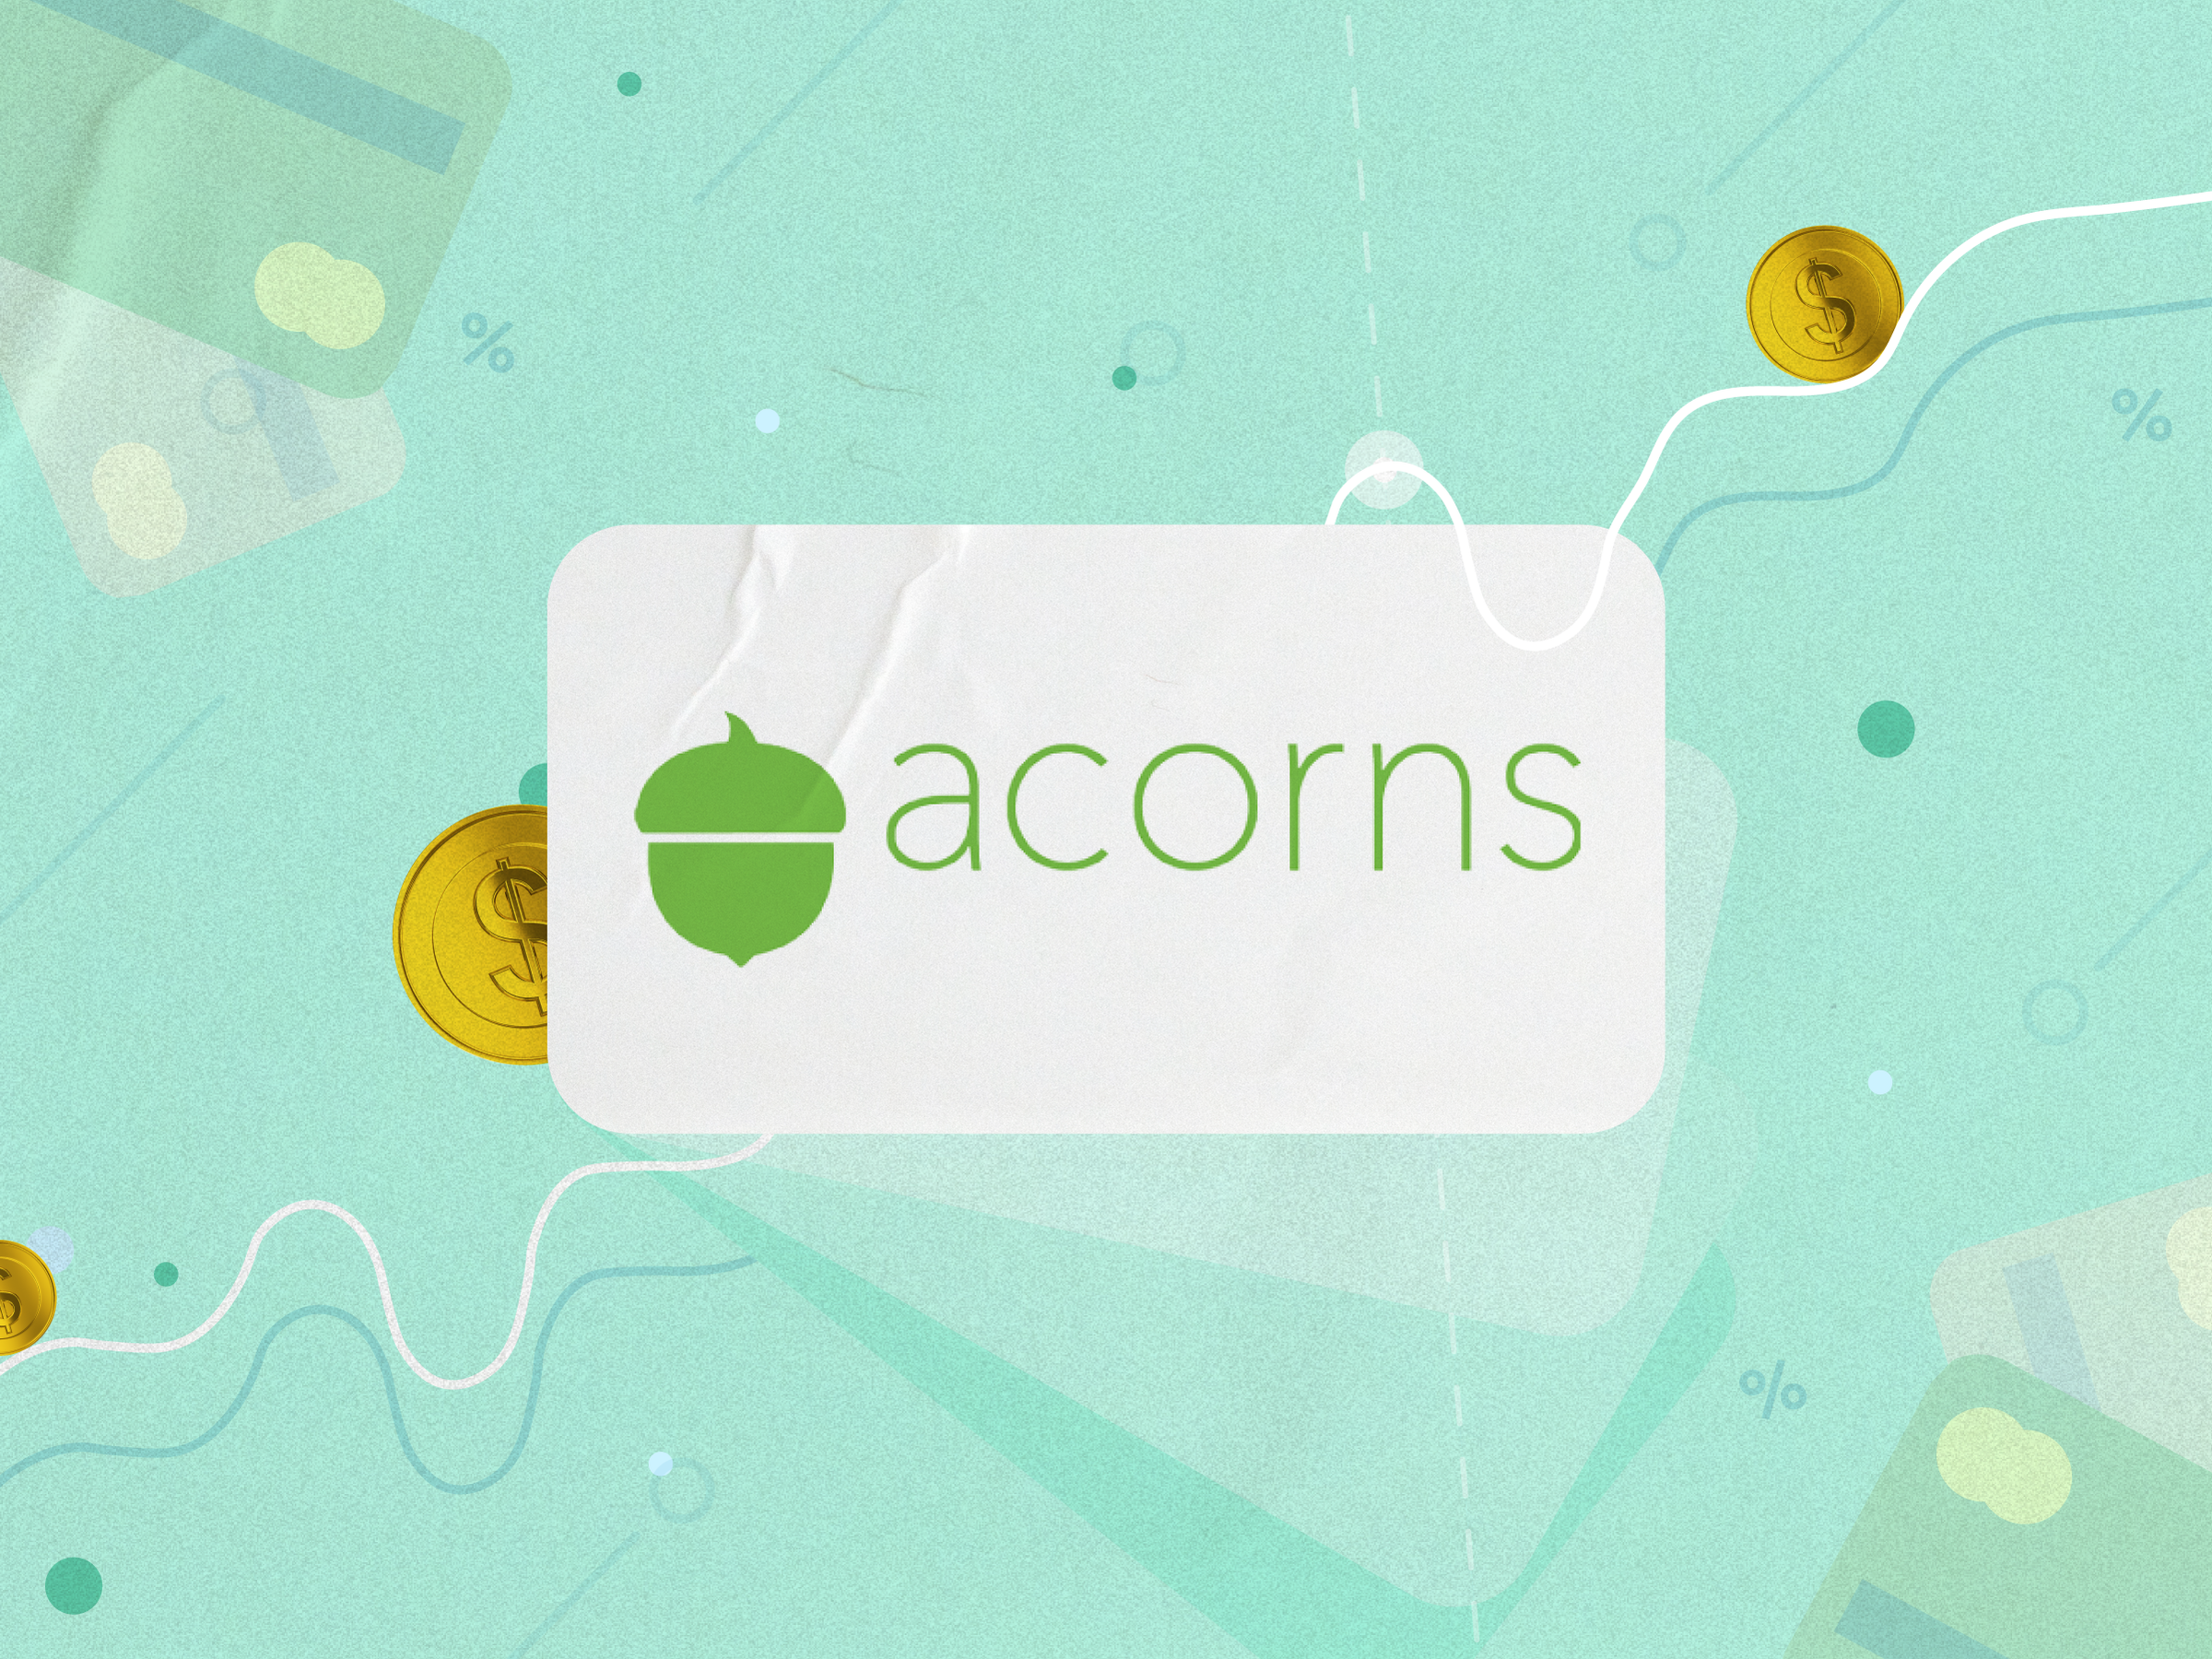 Acorns checking account review 4x3